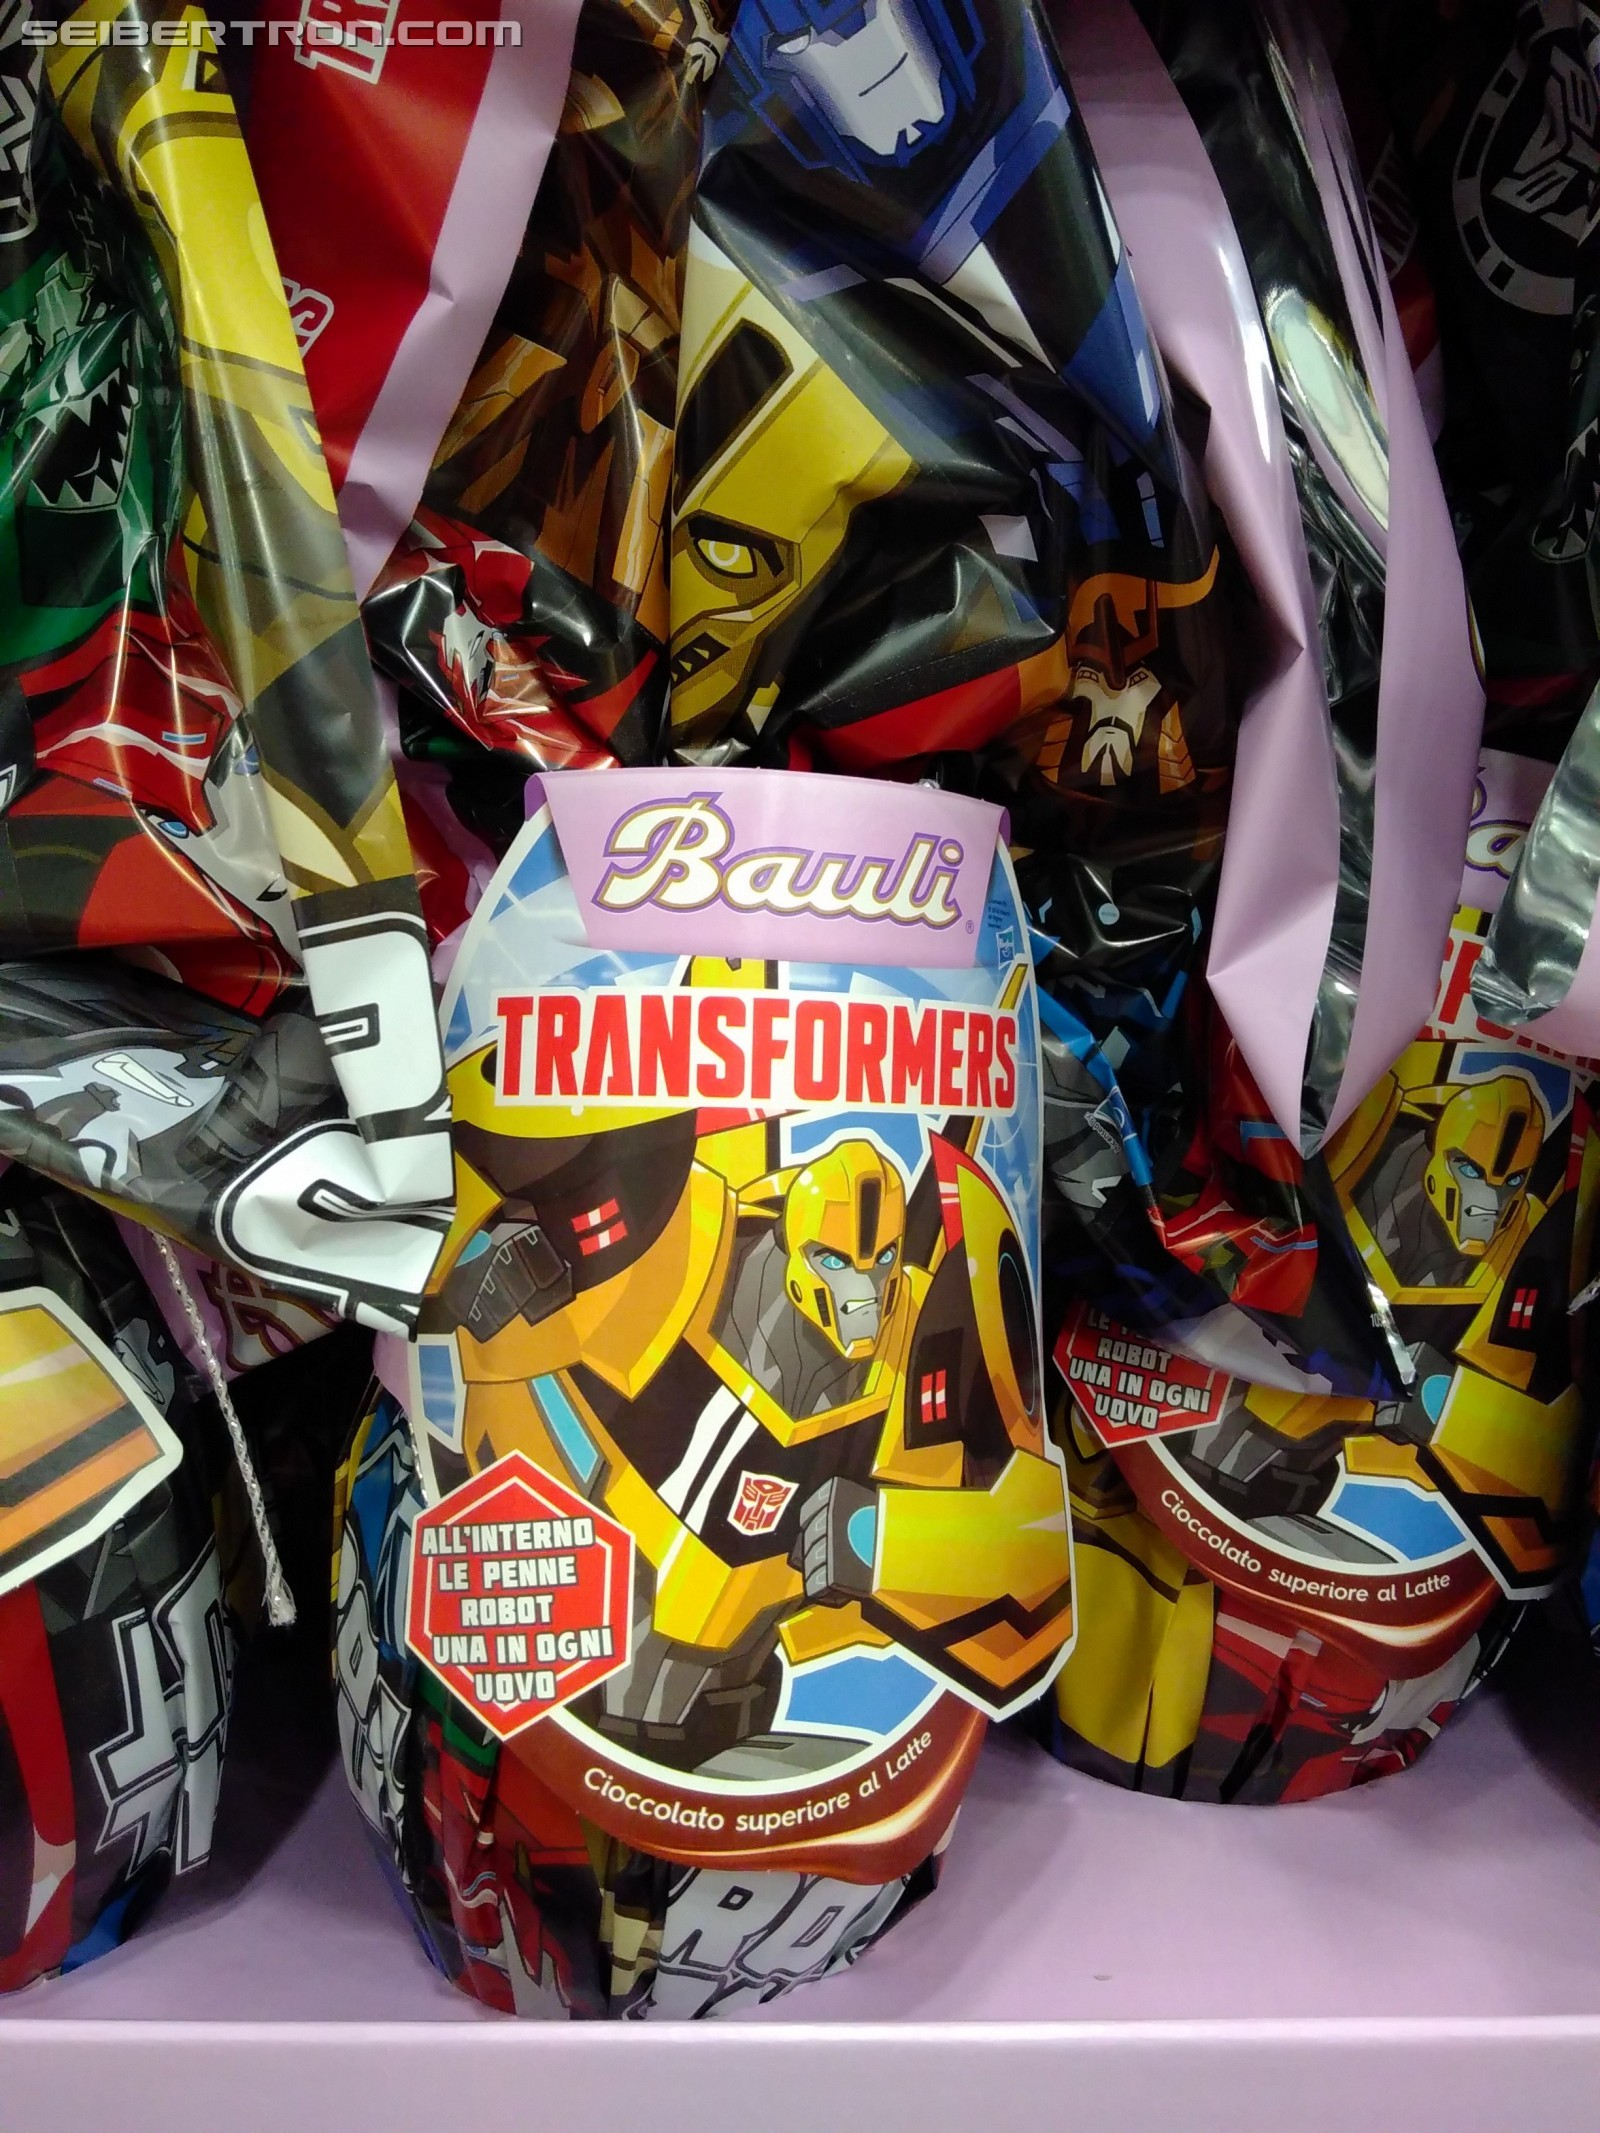 Transformers News: Transformers: Robots in Disguise Italian Surprise Easter Eggs Revealed for 2018